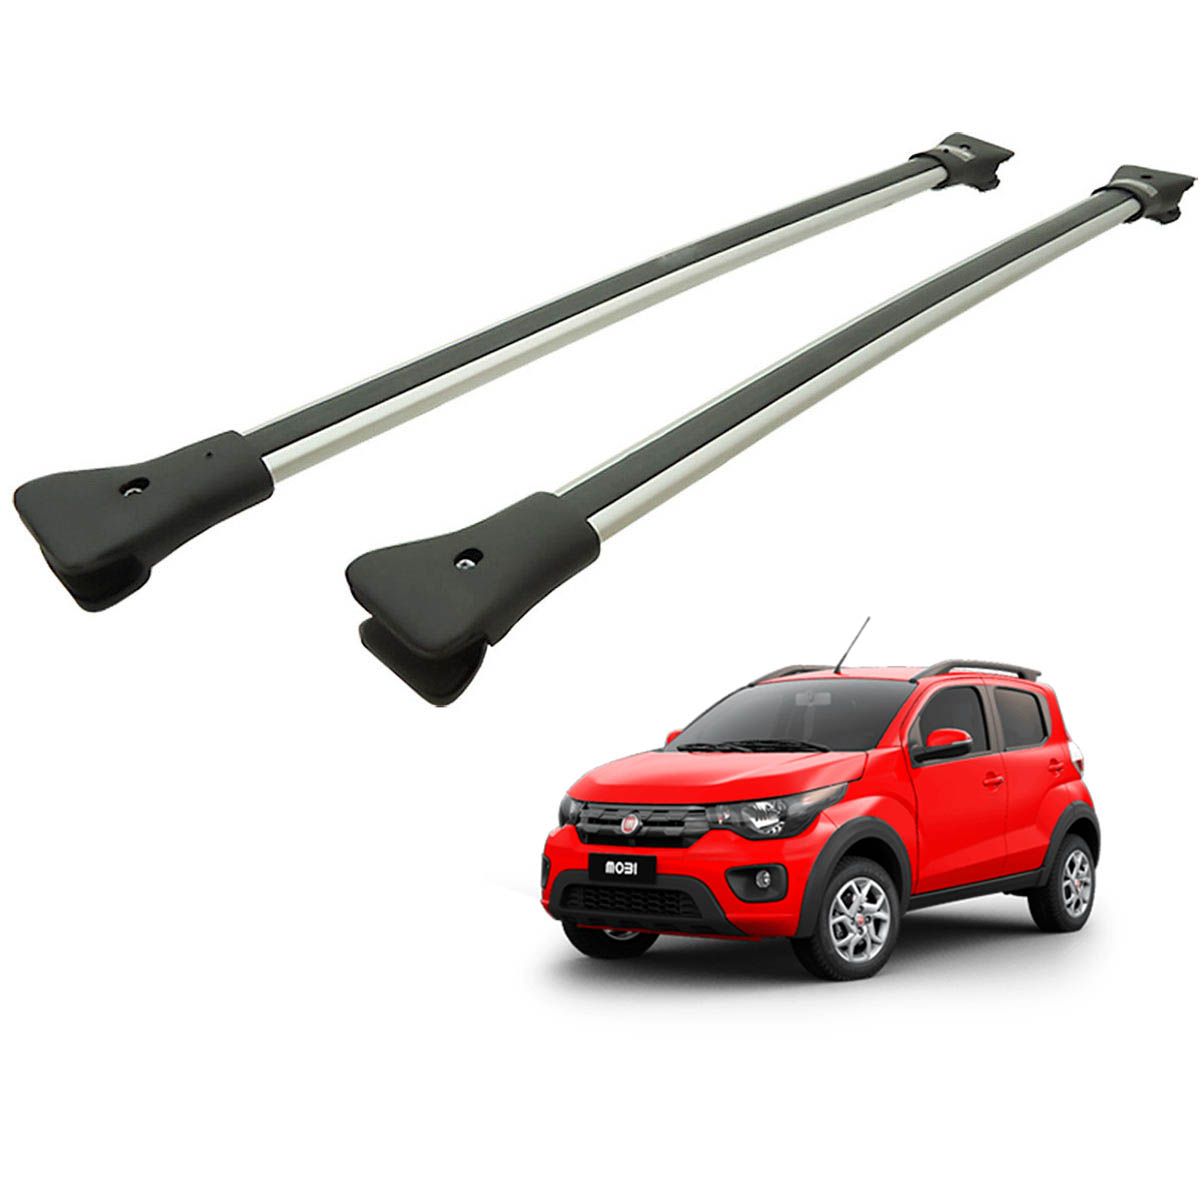 Travessa rack de teto larga alum�nio Fiat Mobi Way 2017